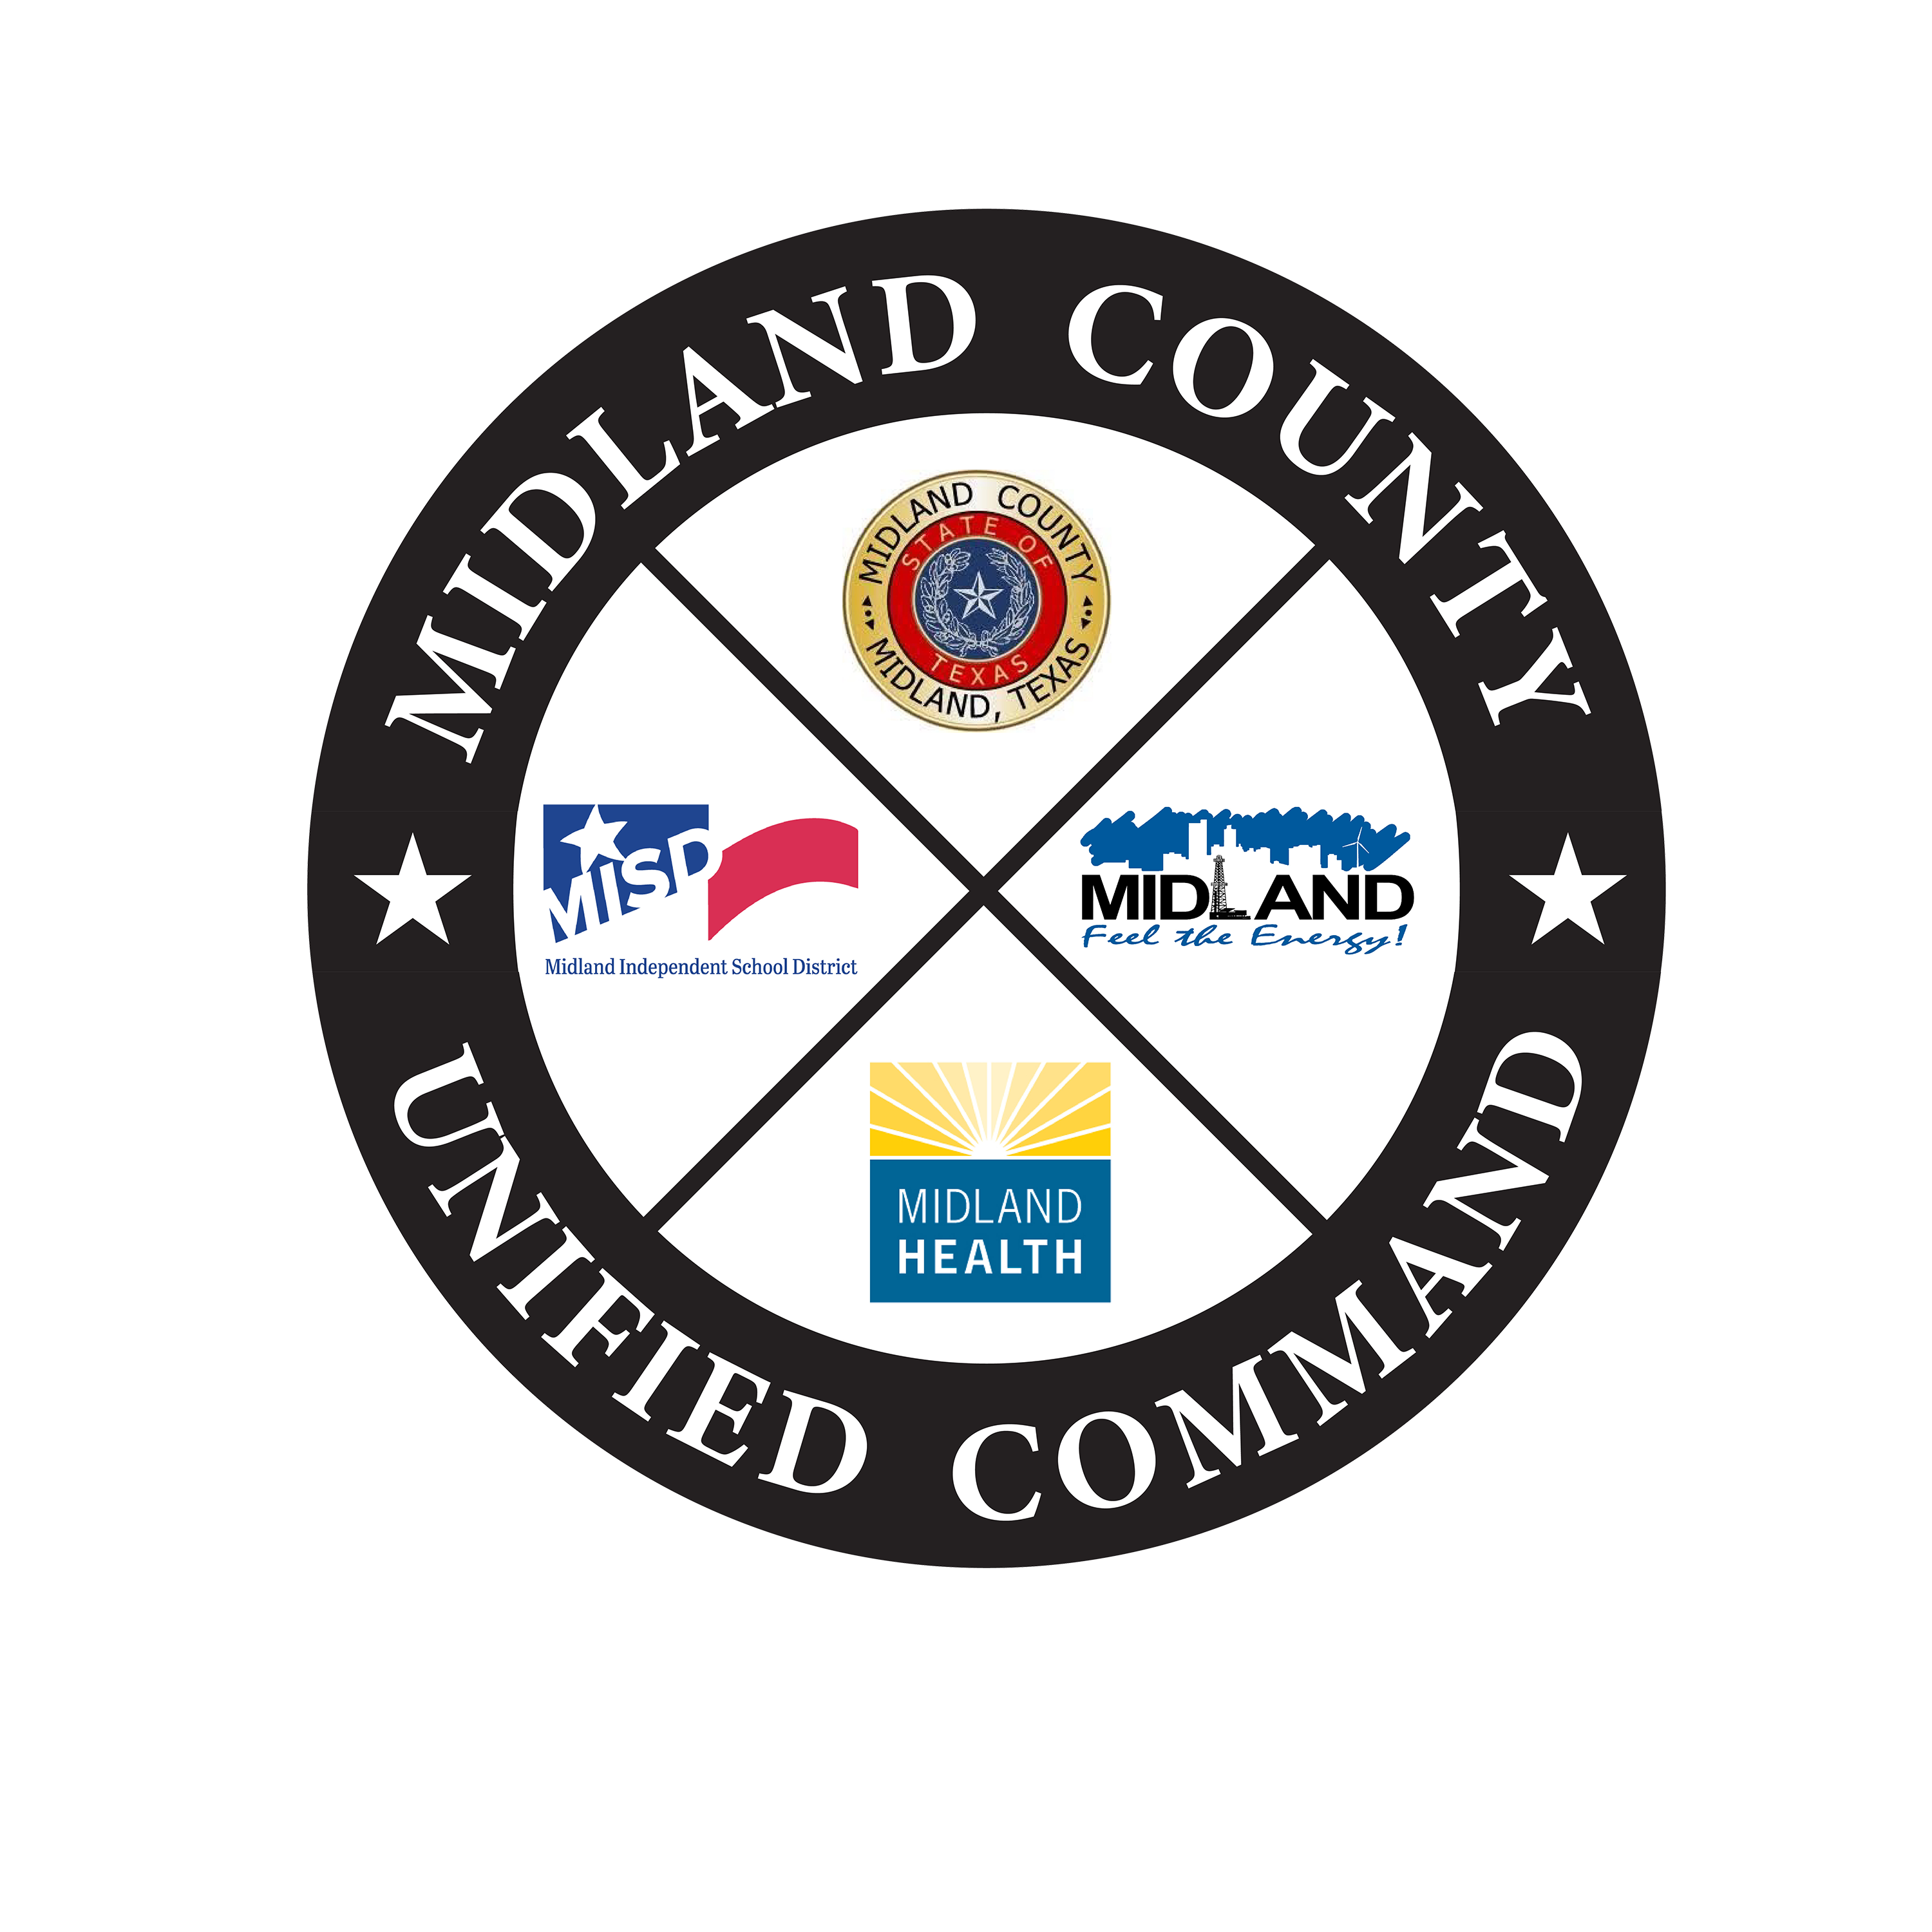 midland country unified command